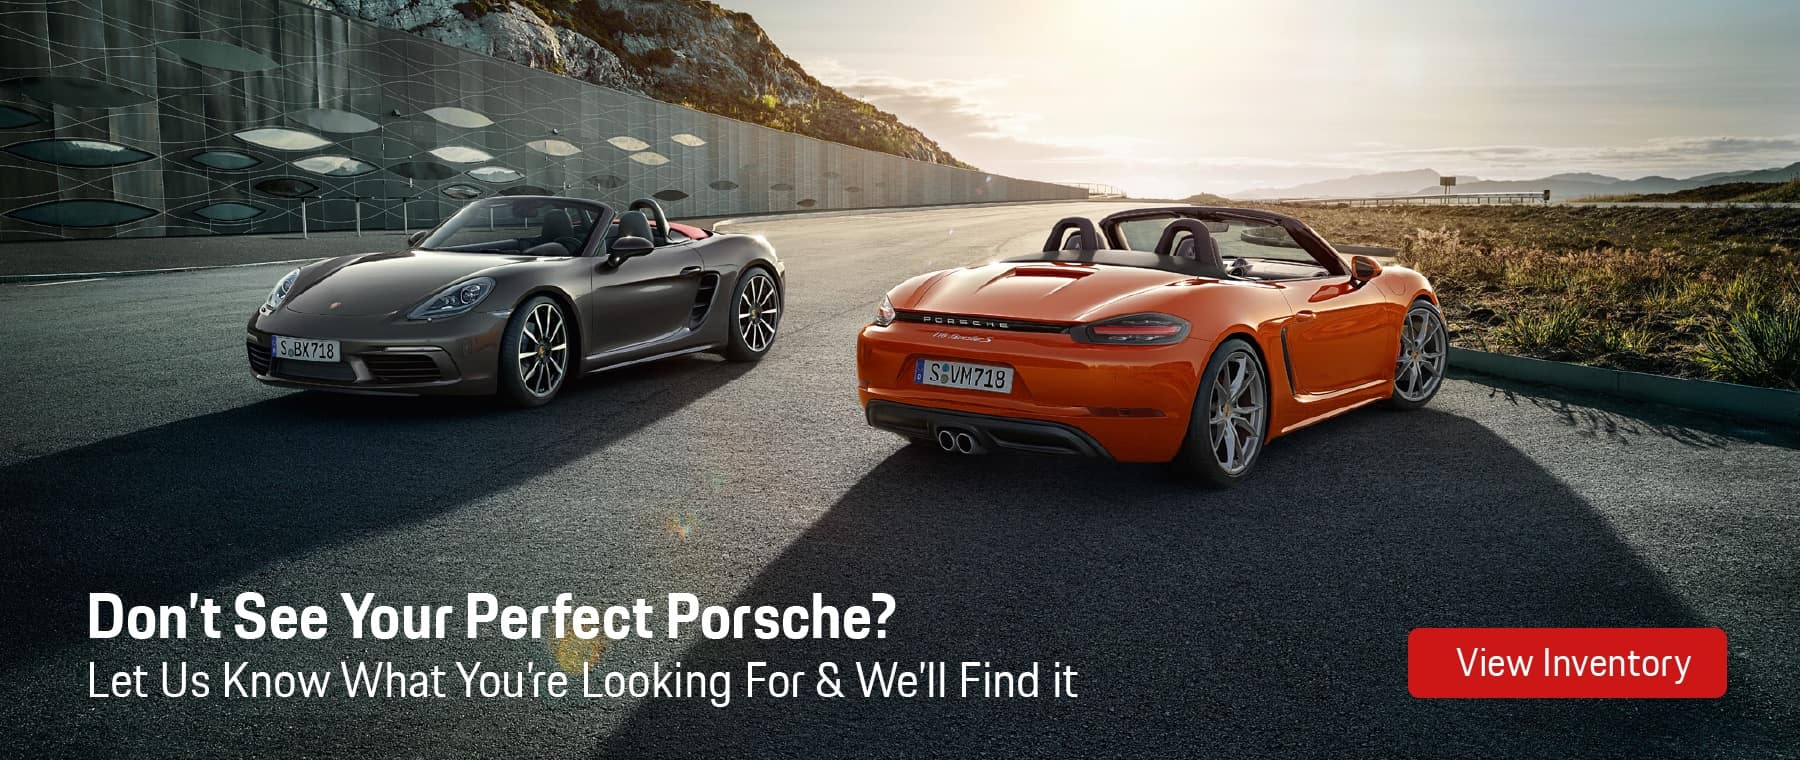 Don't See Your Perfect Porsche